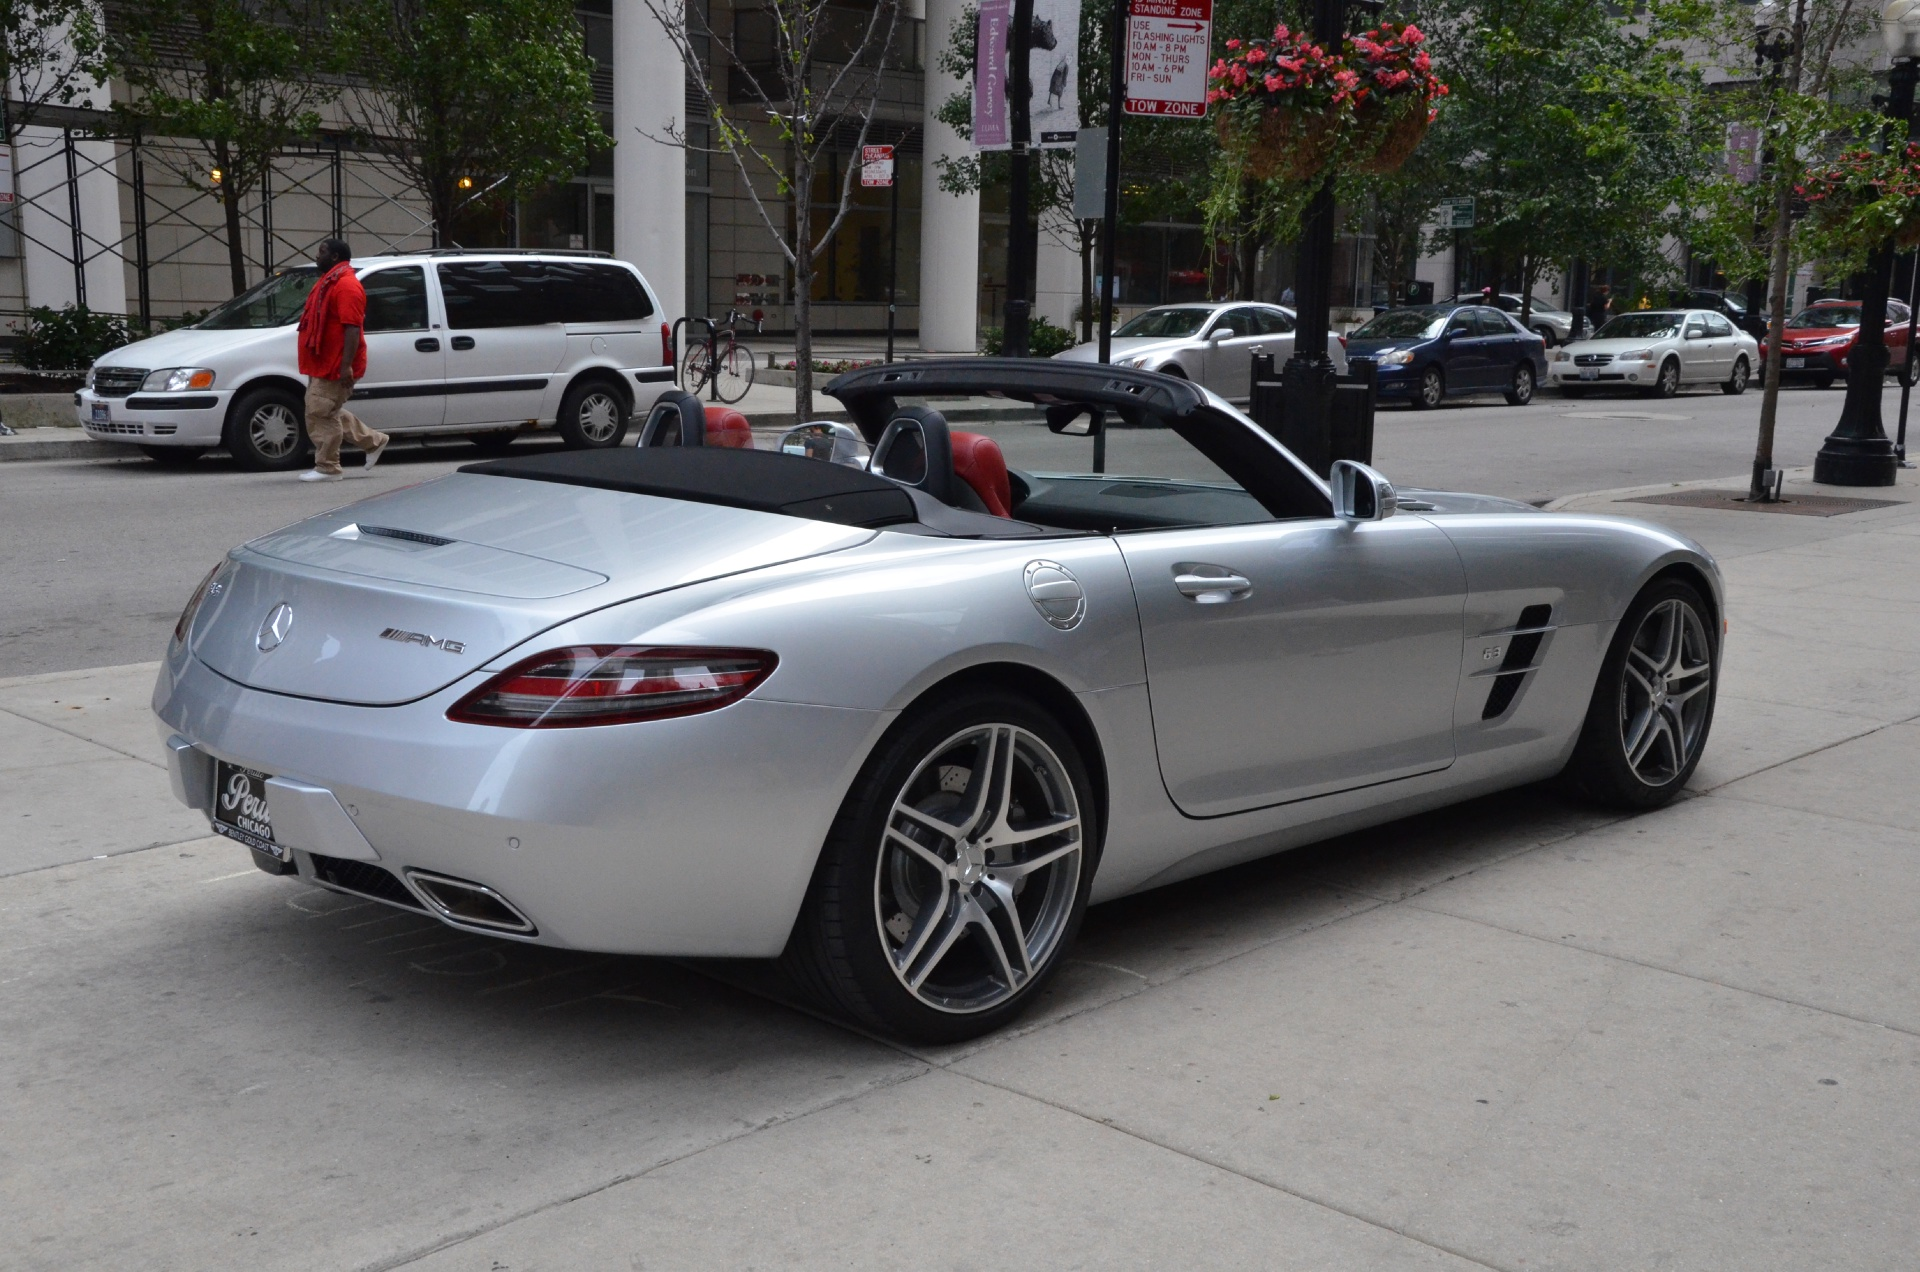 2012 mercedes benz sls class sls amg stock b614a for for Used mercedes benz sls amg for sale